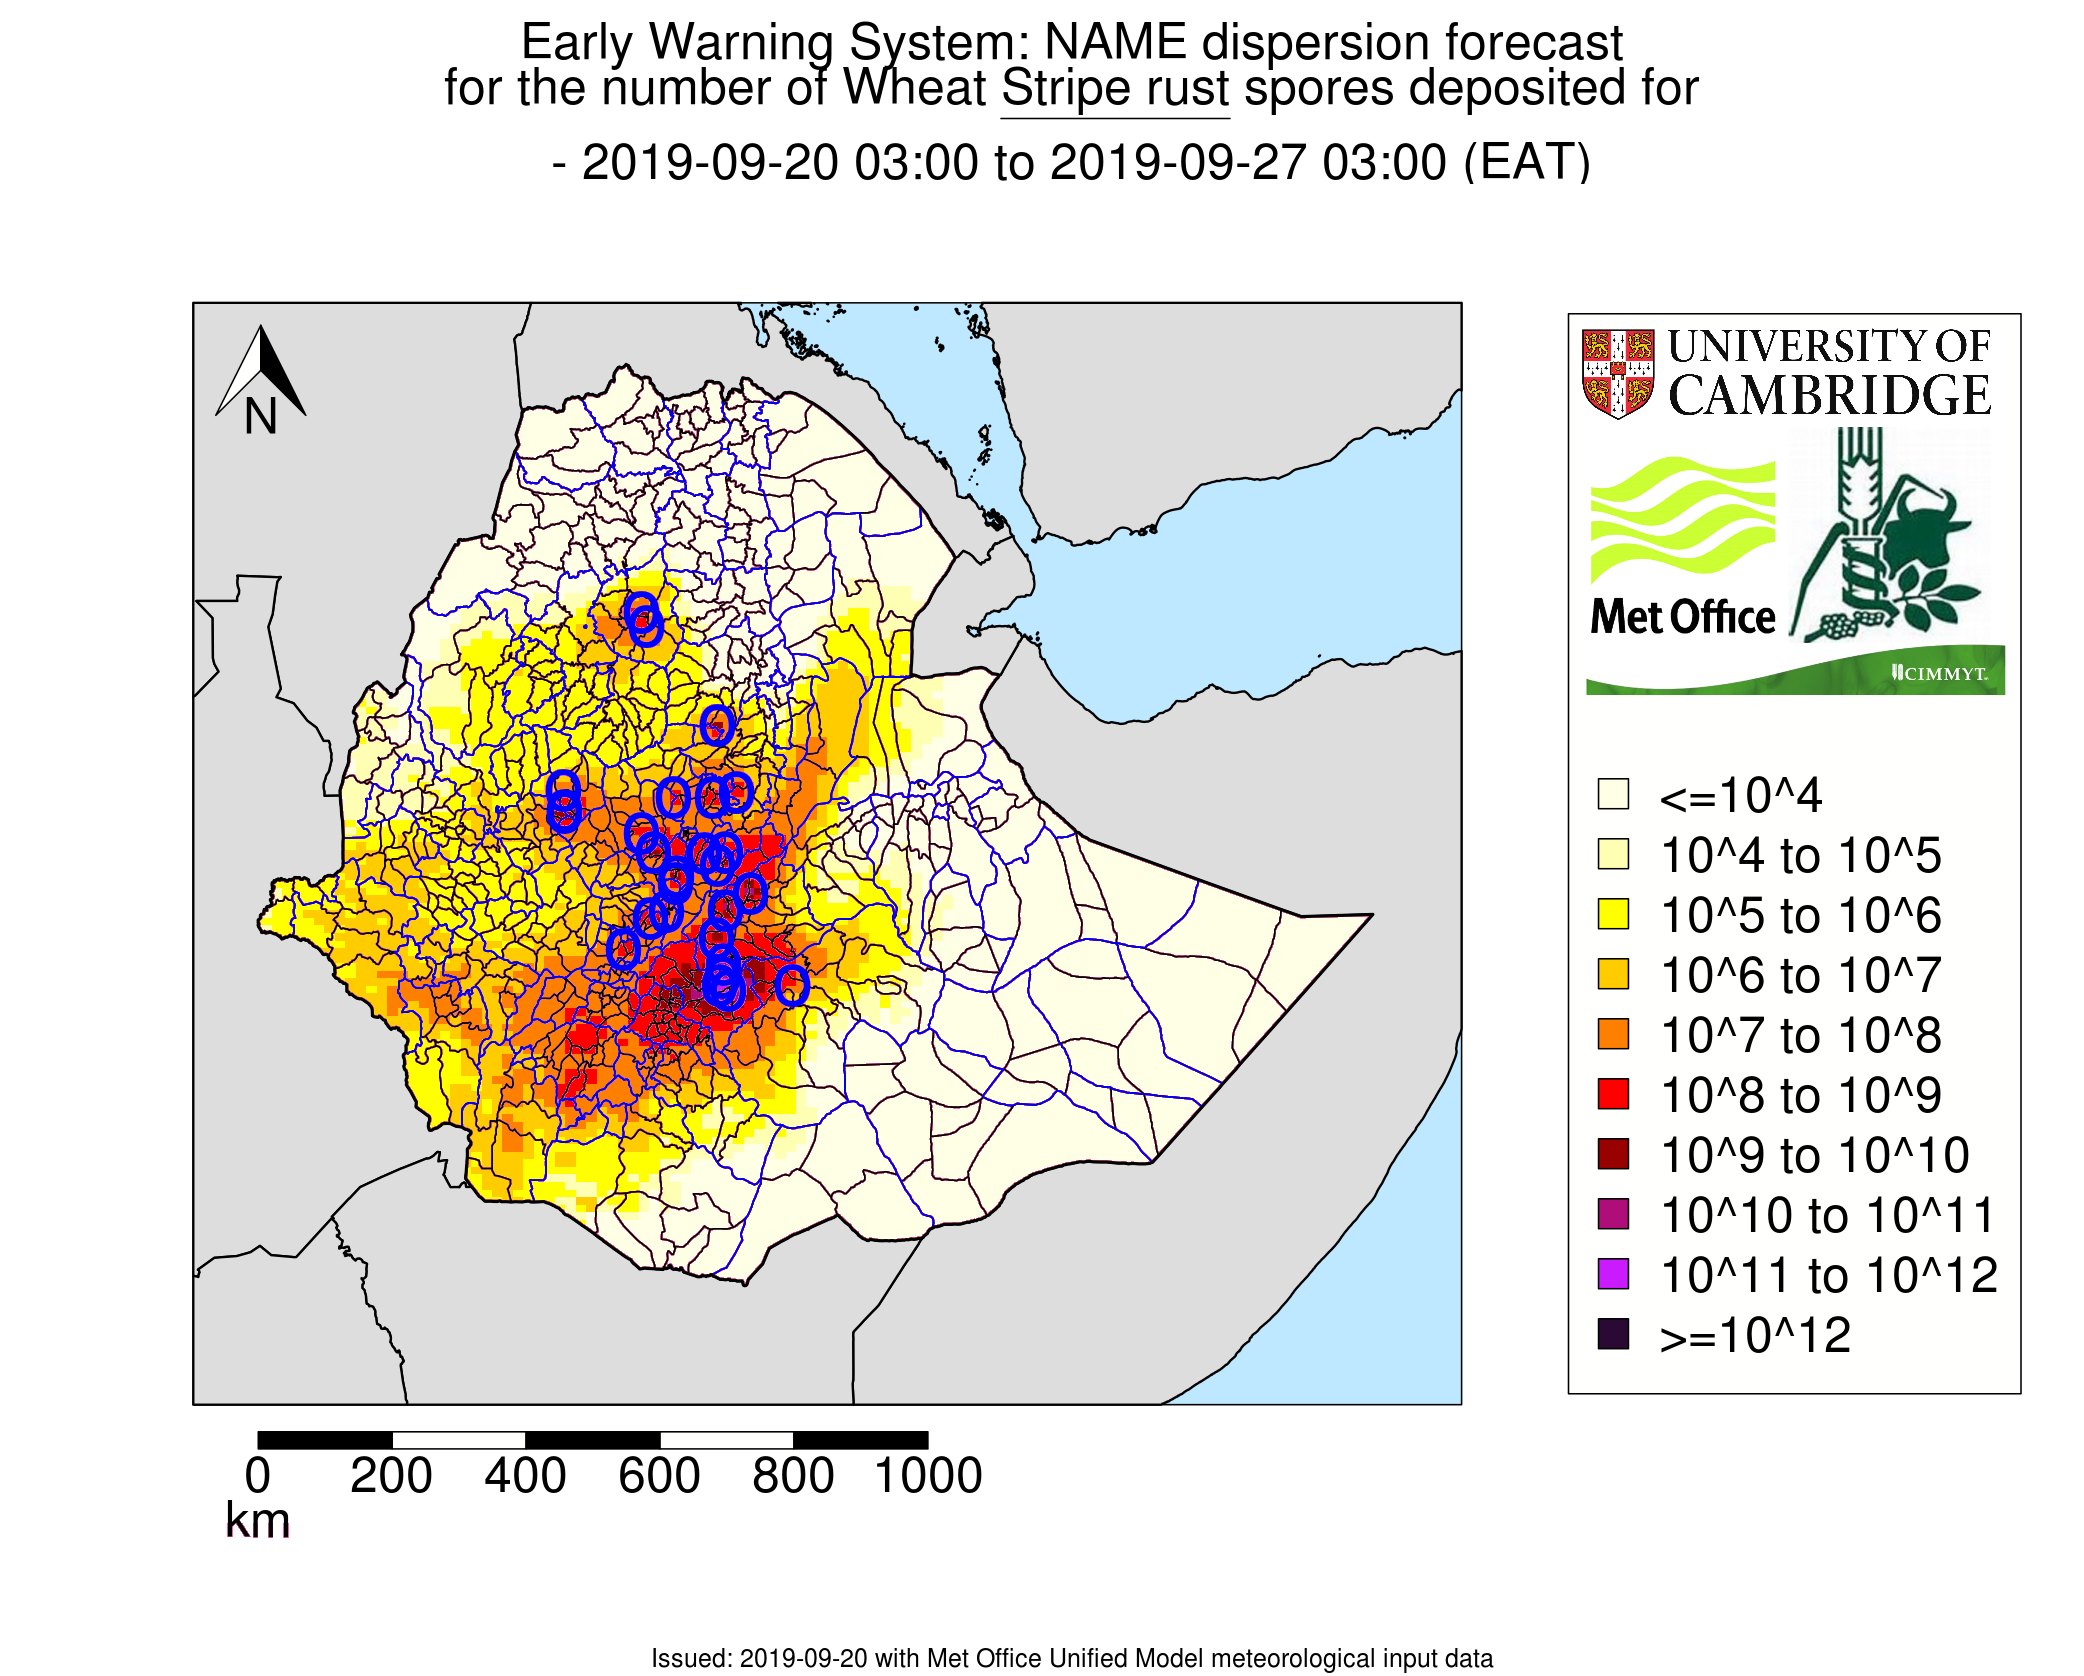 Example of weekly stripe rust spore deposition based on dispersal forecasts. Darker colors represent higher predicted number of spores deposited. (Graphic: University of Cambridge/UK Met Office)